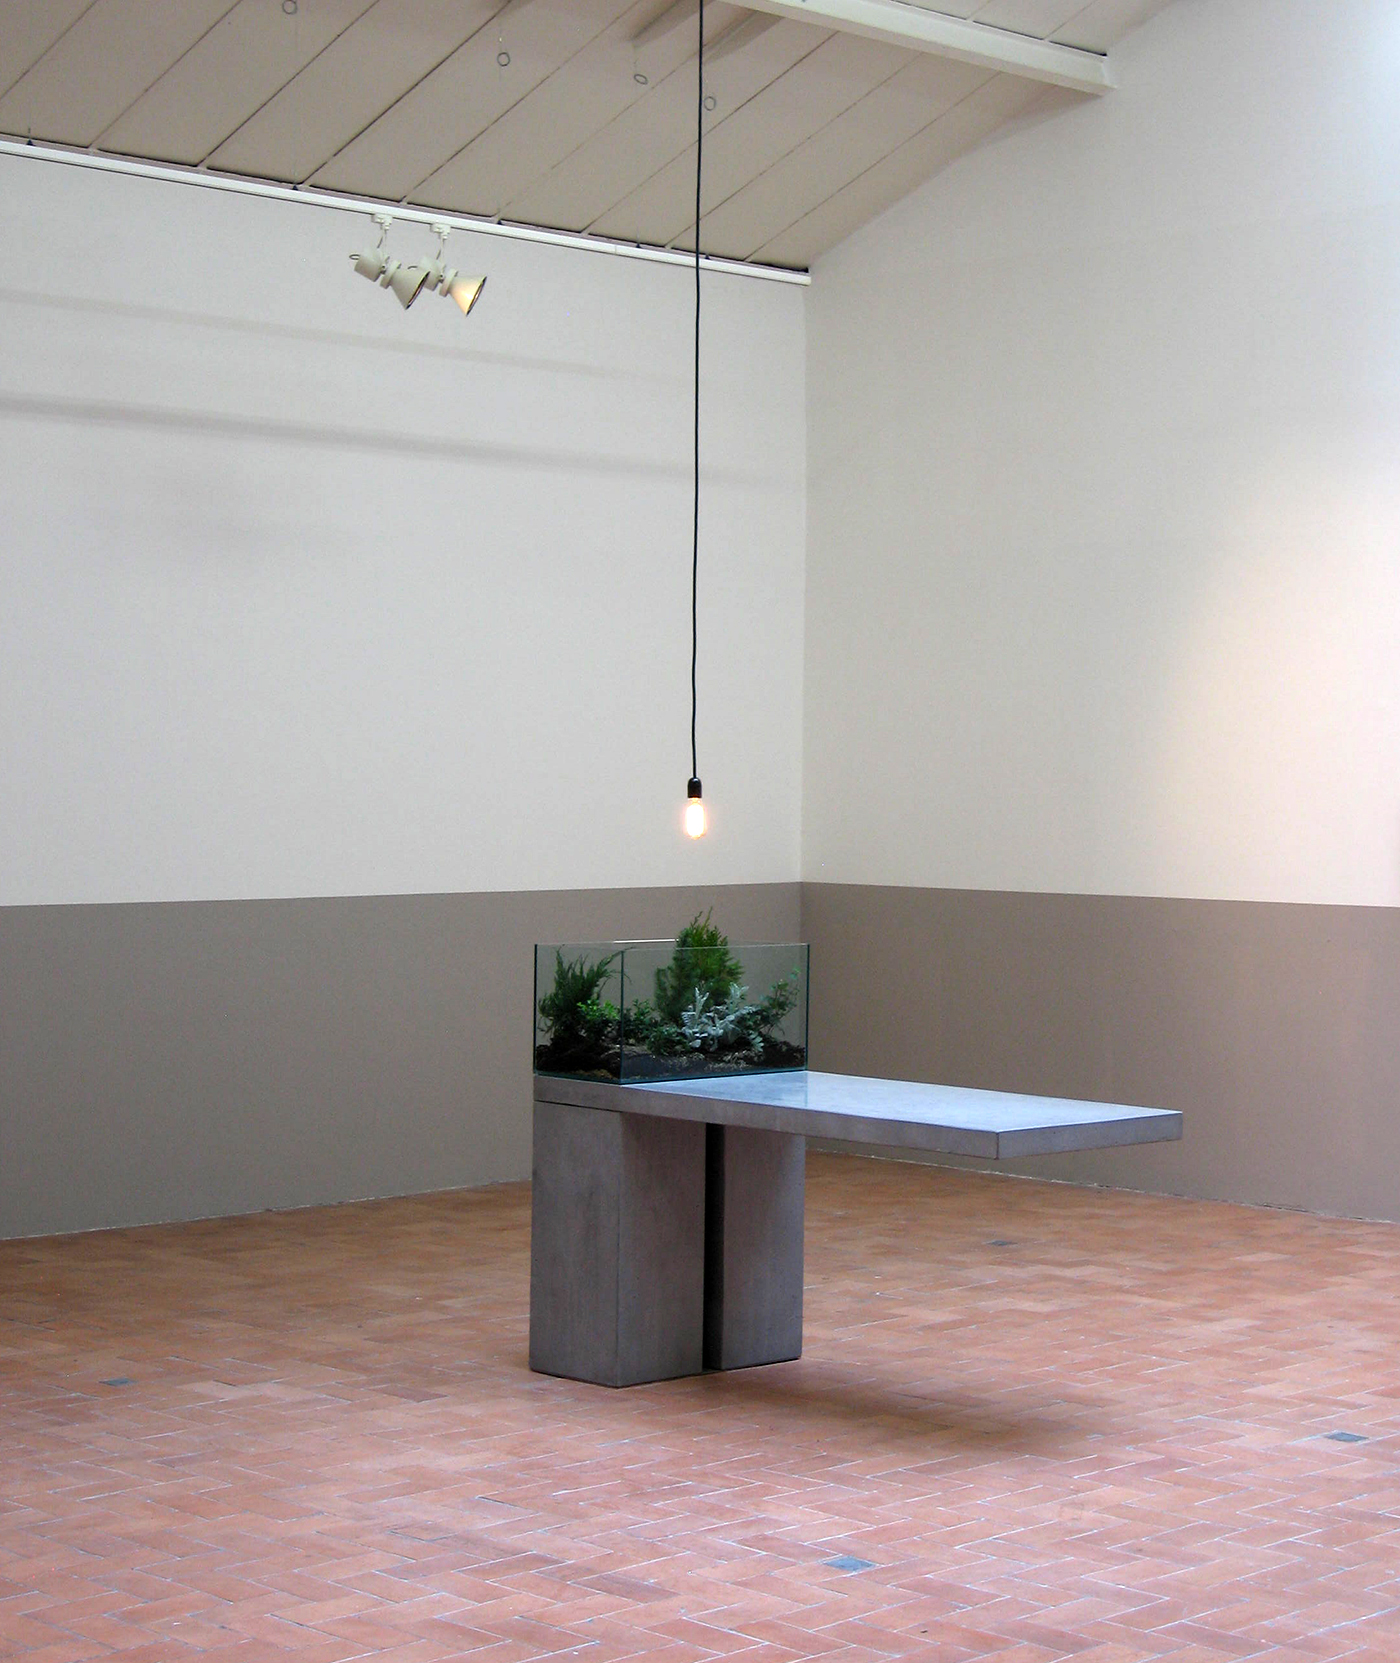 Andrea Blum - Exhibition view, 2013